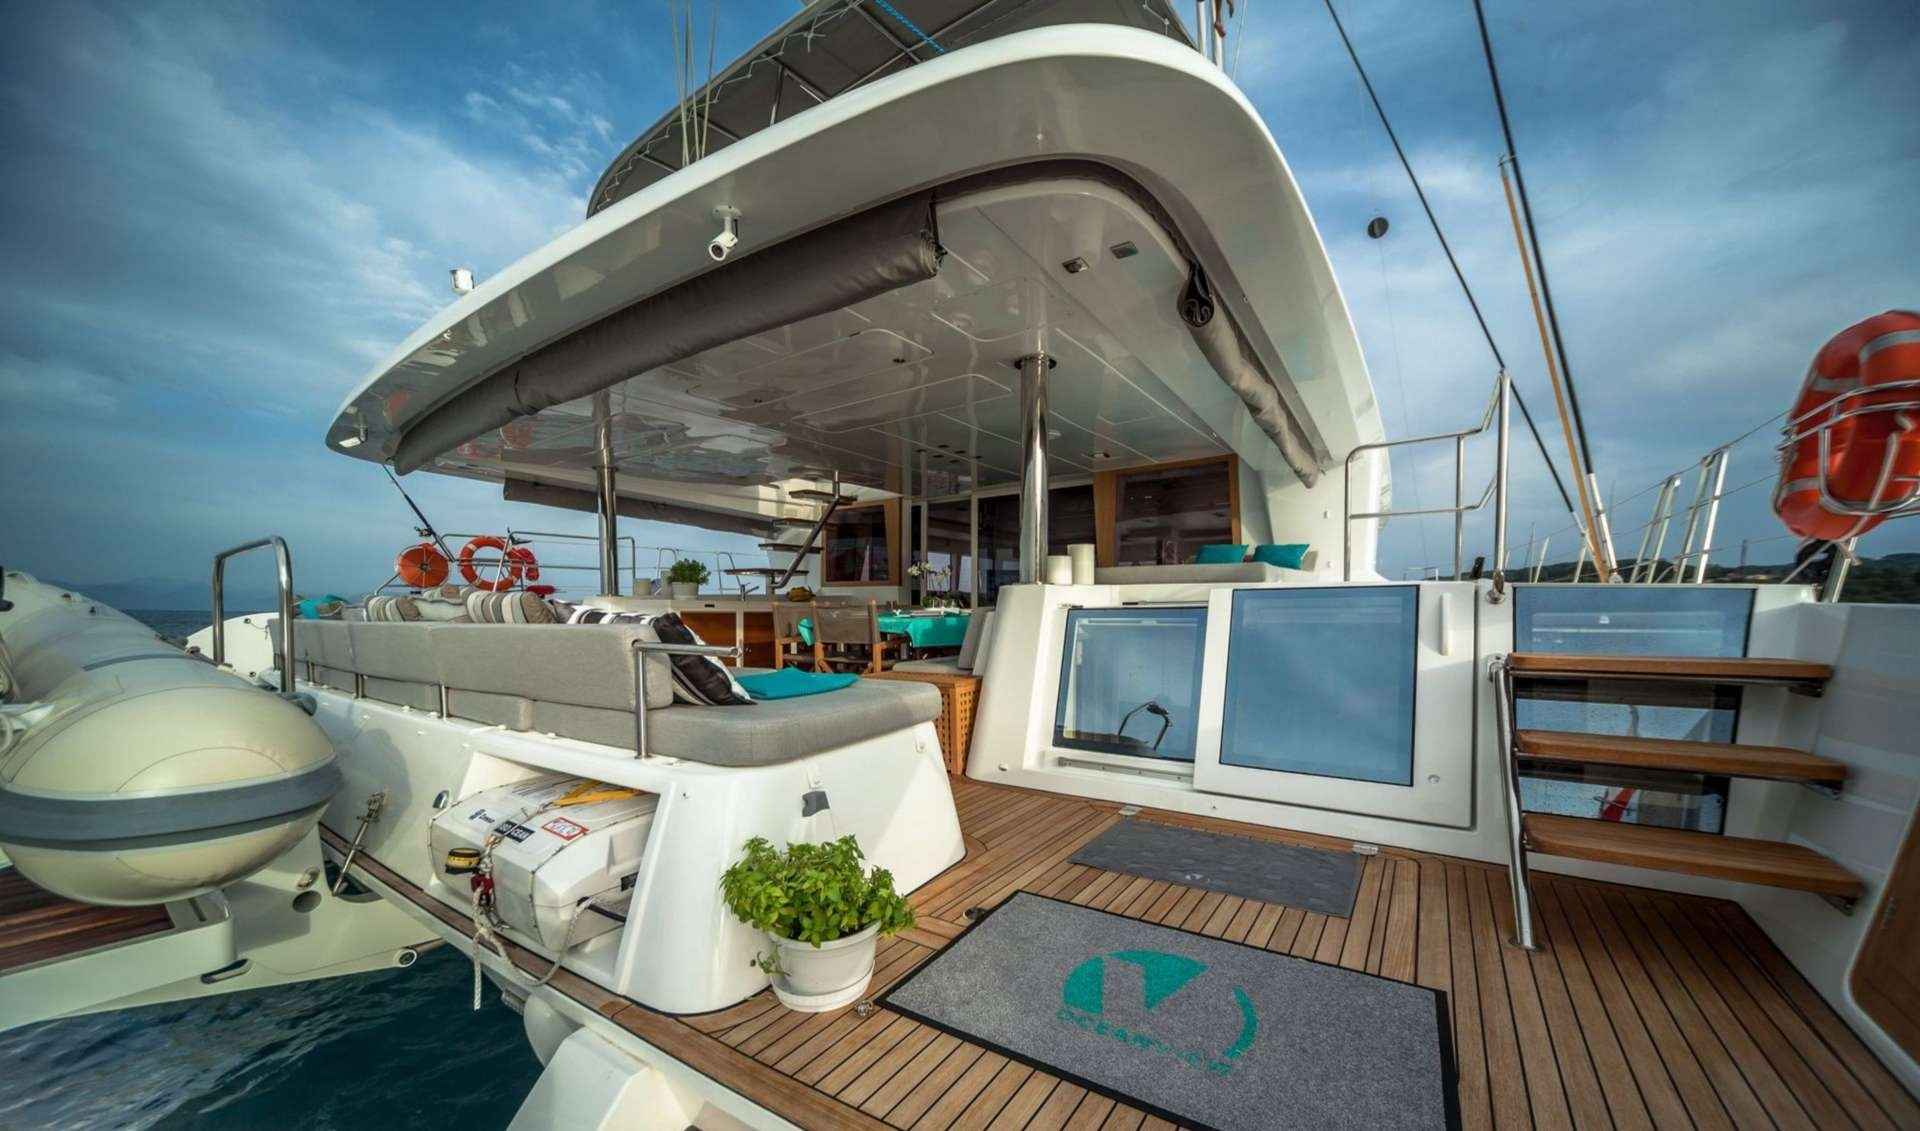 Catamaran Yacht 'OCEAN VIEW' Aft deck, 6 PAX, 2 Crew, 62.00 Ft, 18.00 Meters, Built 2014, Lagoon, Refit Year 2016